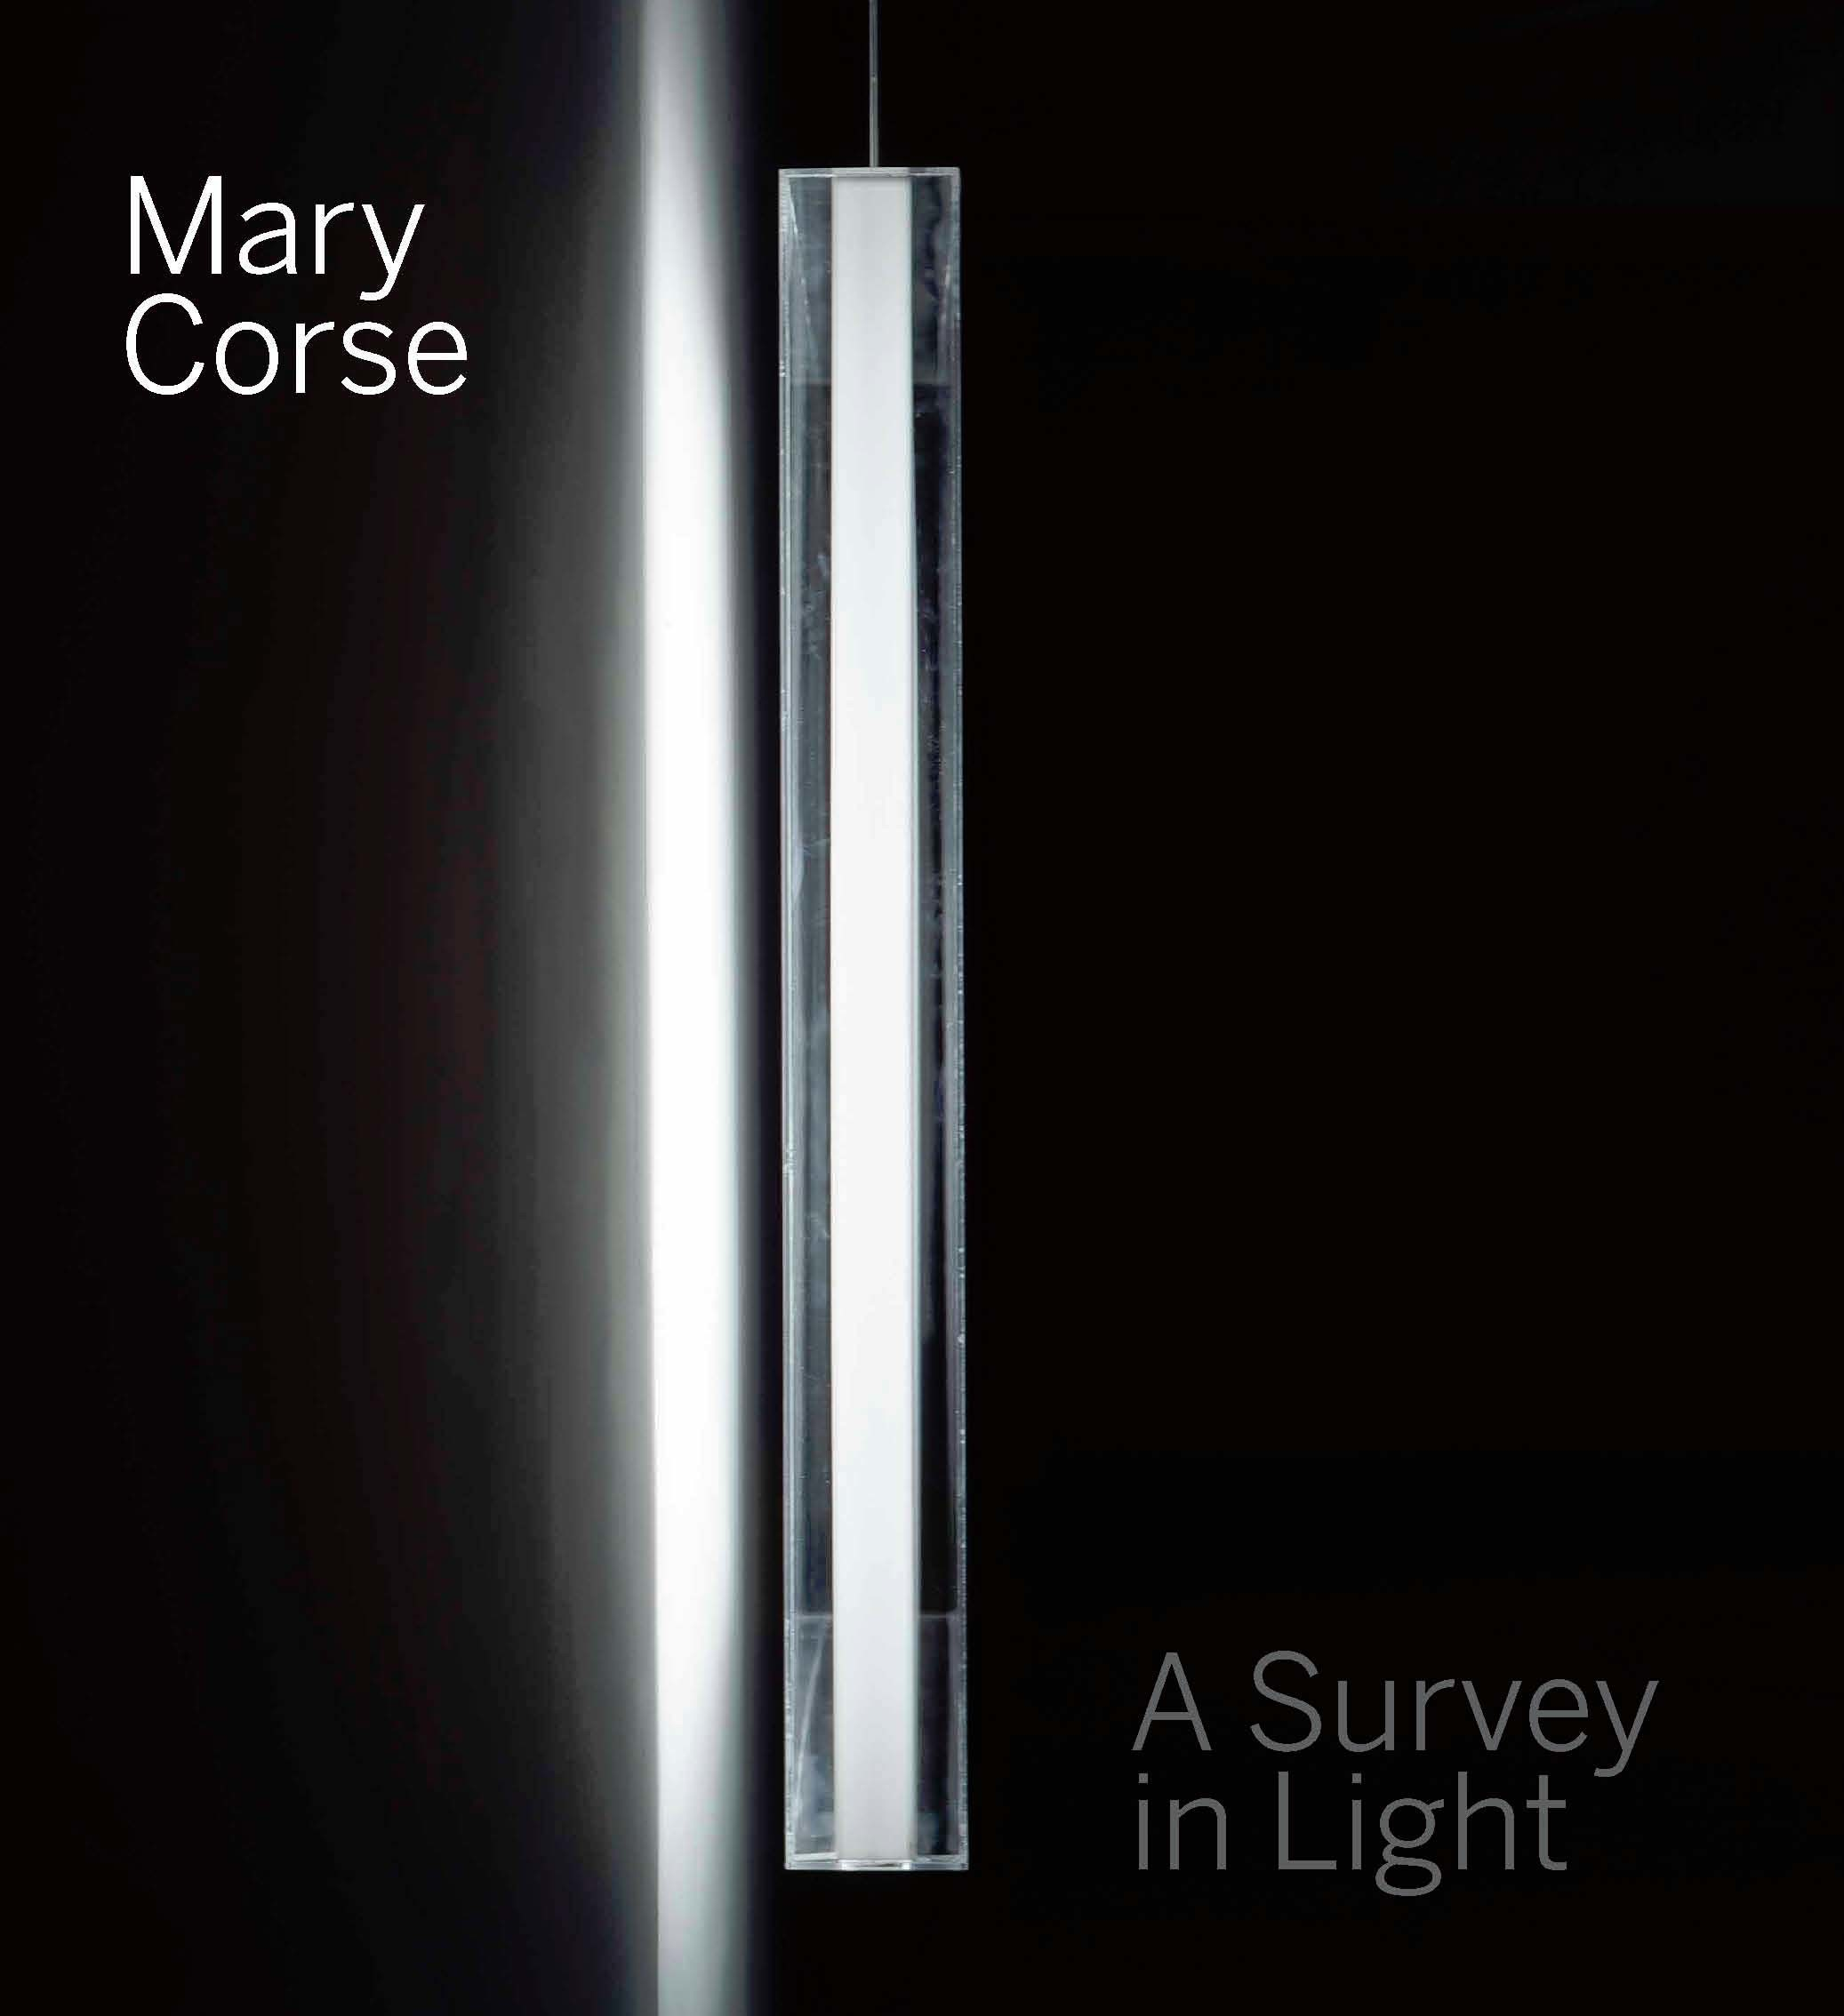 Mary Corse: A Survey in Light